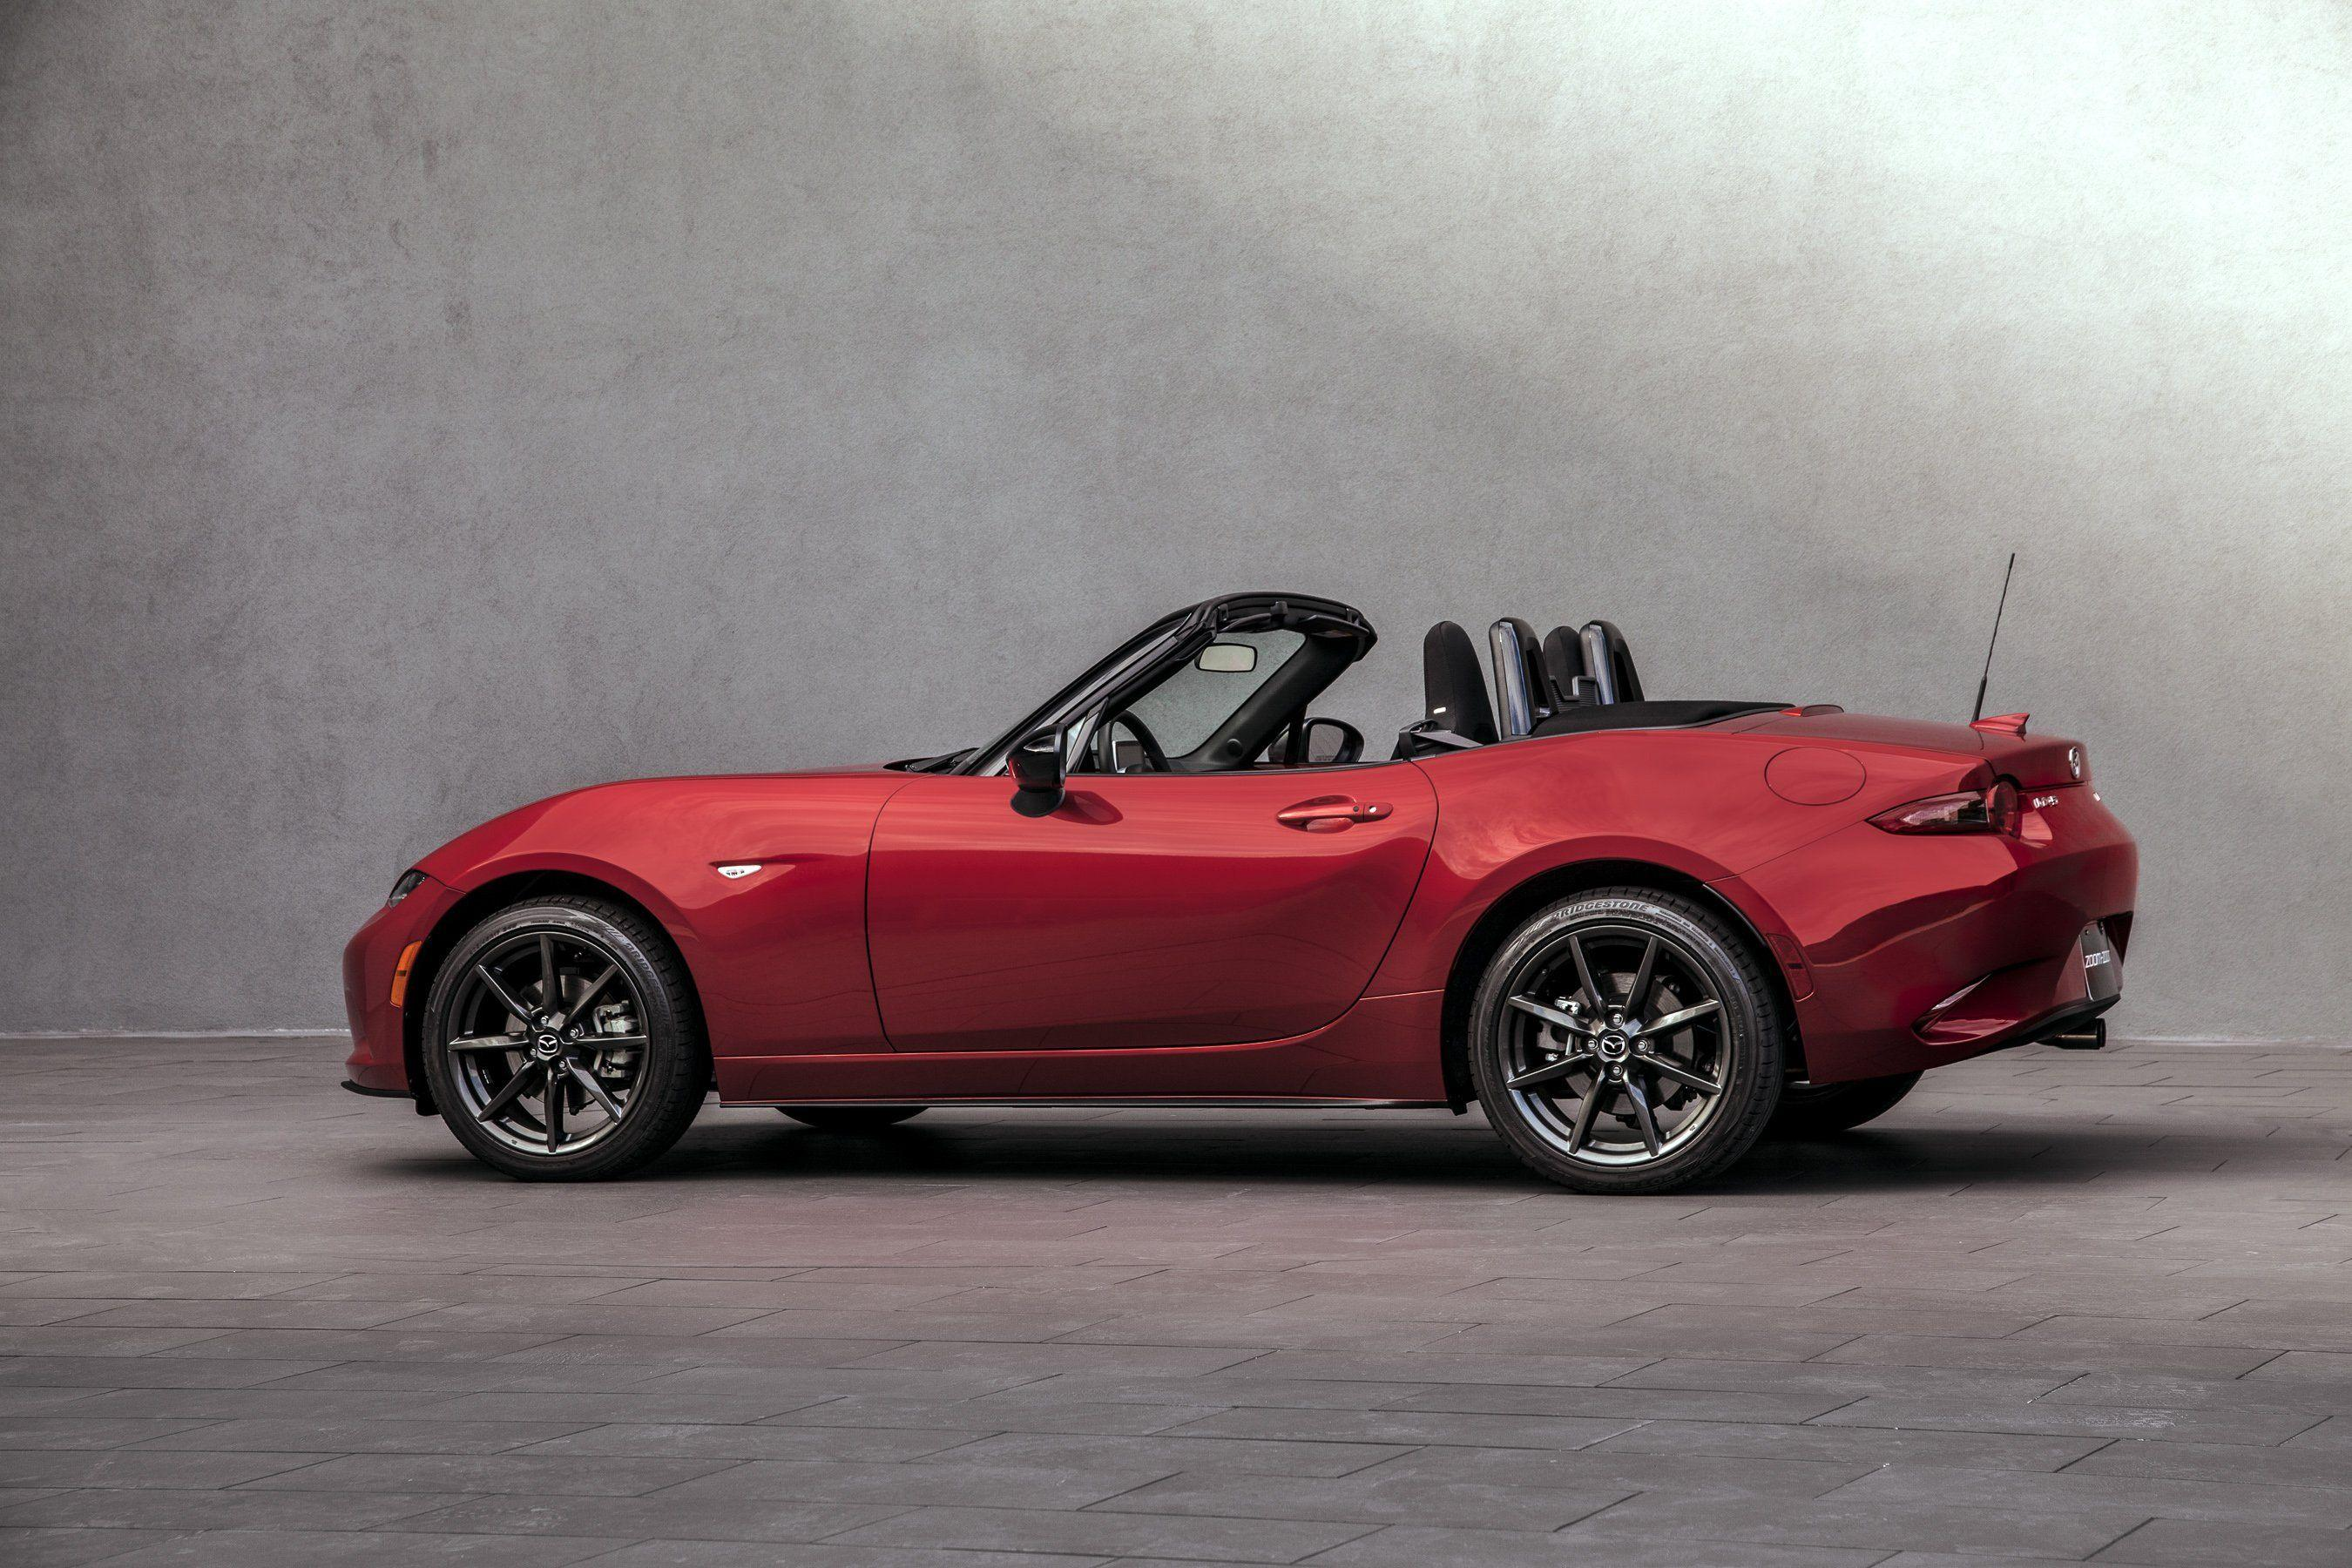 2016 Mazda MX-5 Miata US-spec cars roadster red 2015 wallpaper ...